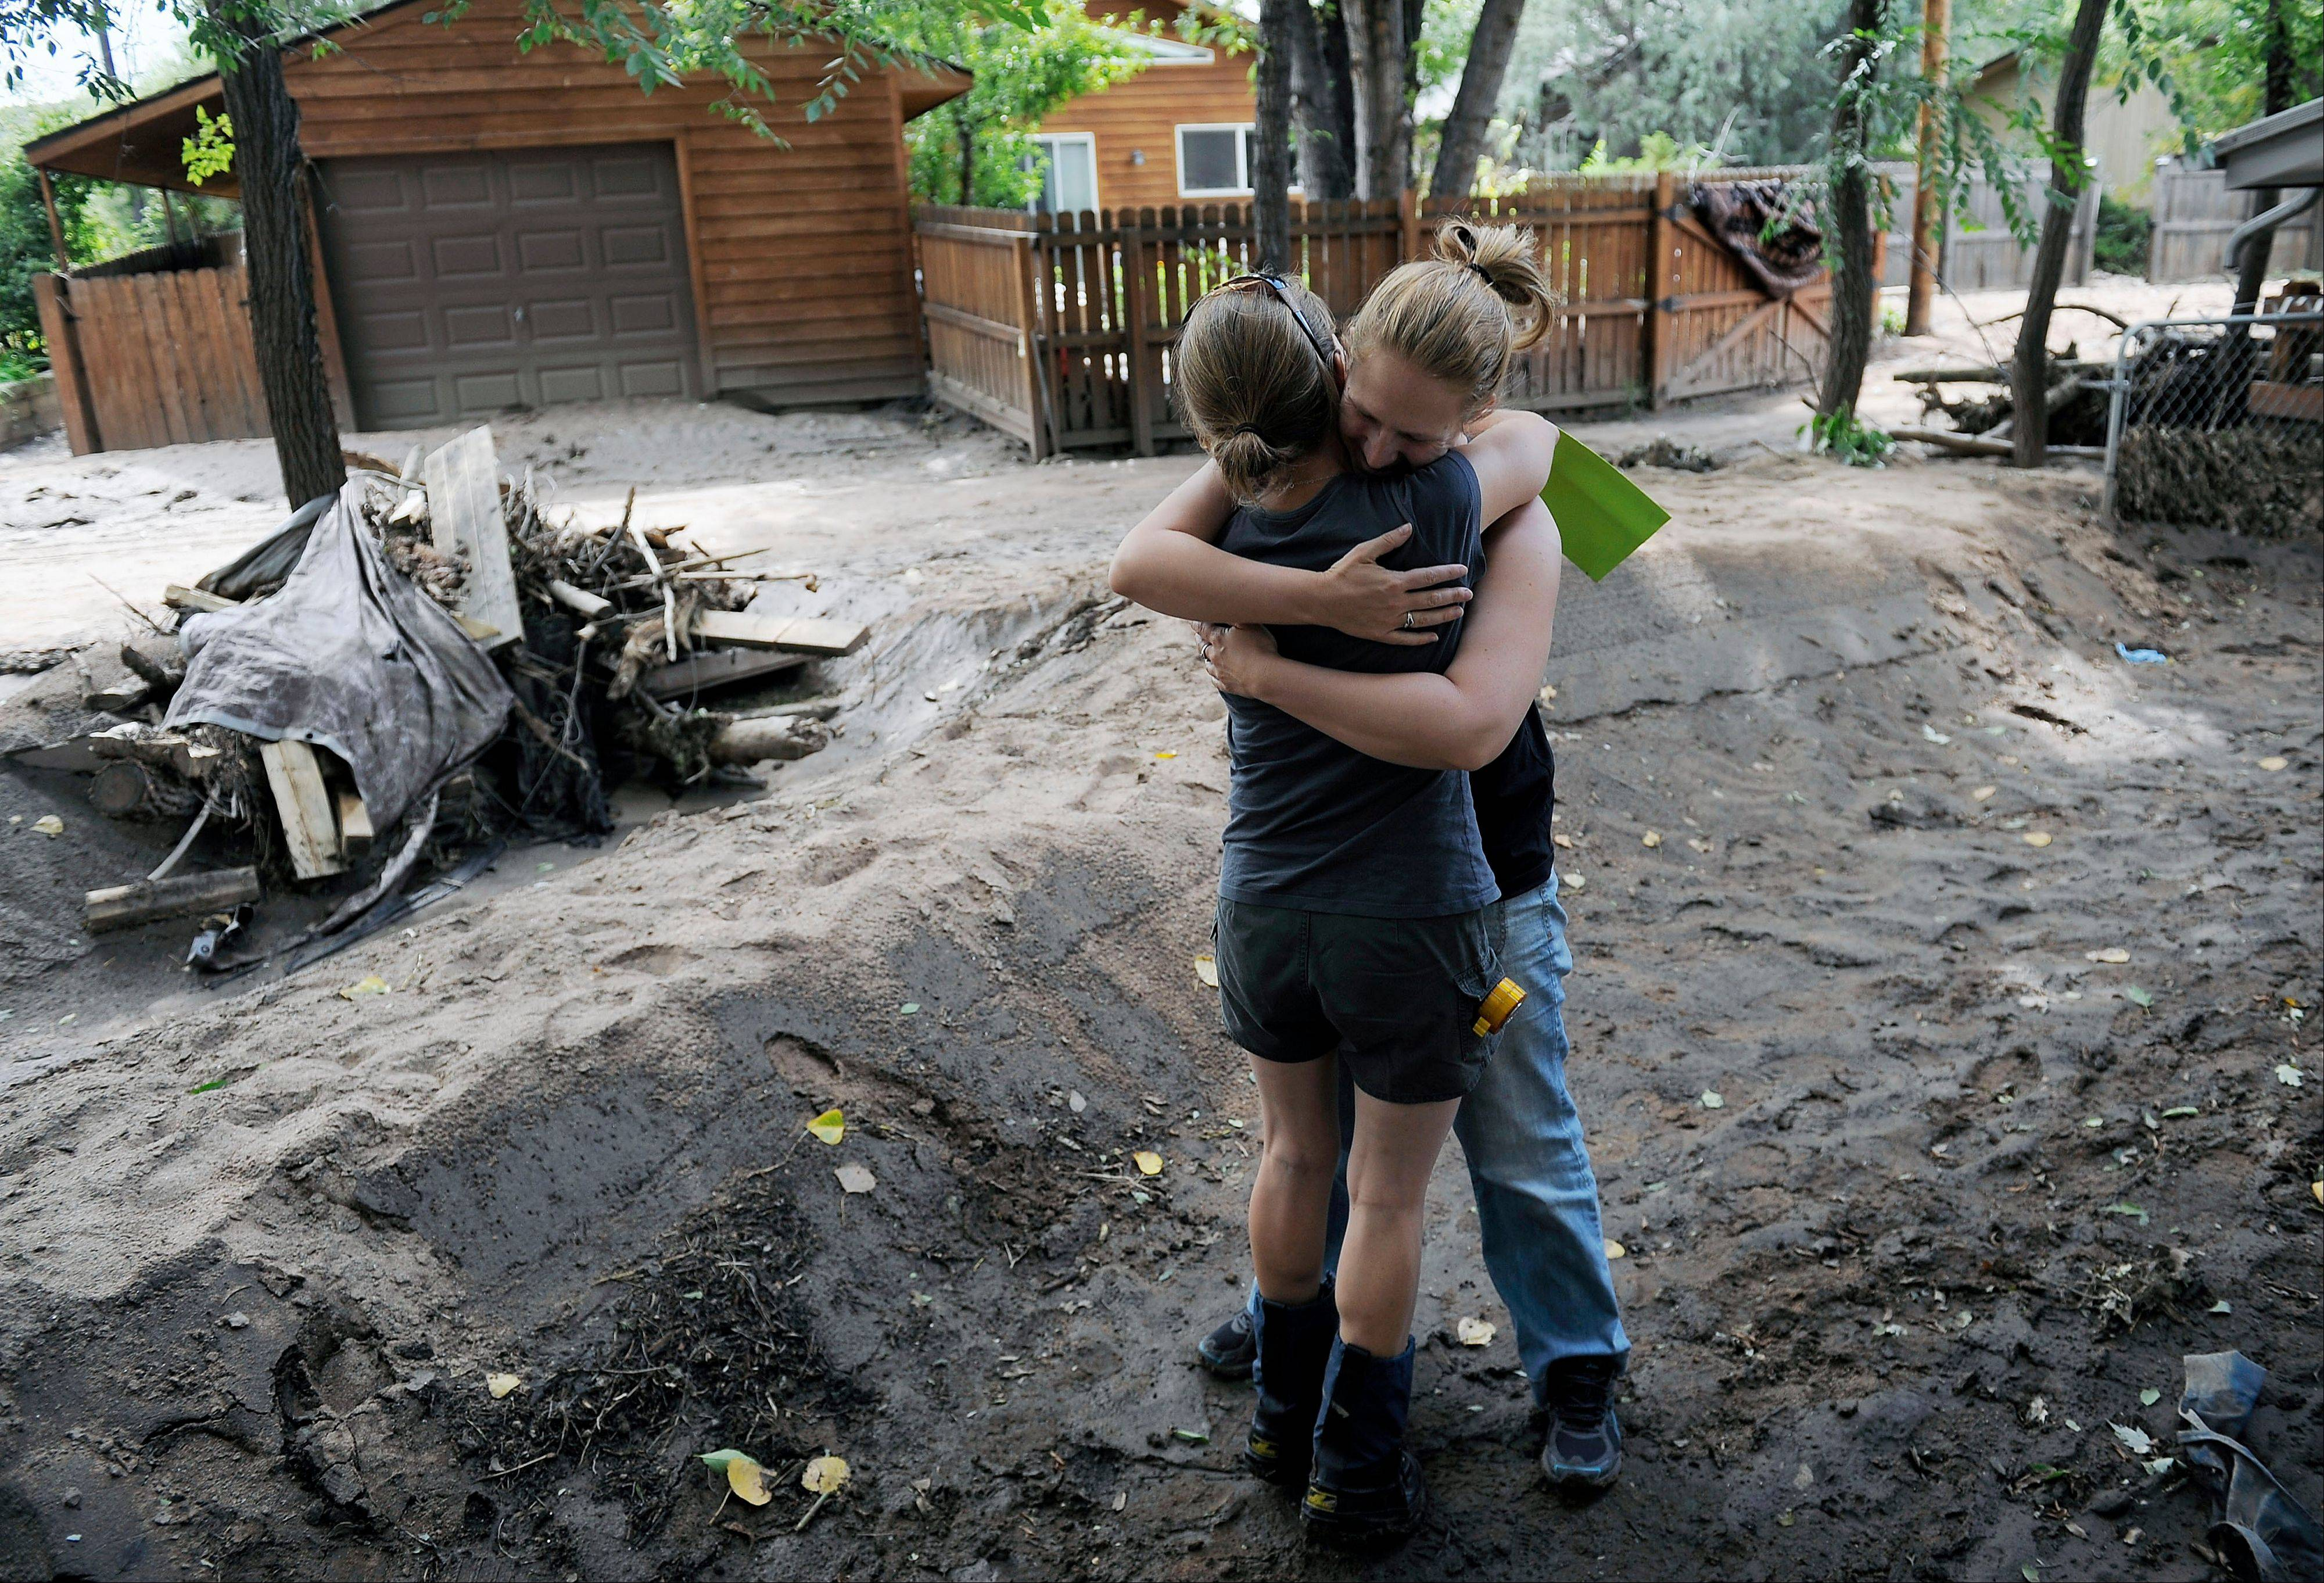 Neighbor Roslynn Regnery, right, gives a hug to Emma Birath, left, as they check on their homes in Lyons, Colo., on Thursday, Sept. 19, 2013. The recovery process has begun all along the front range as people clean out flooded homes and businesses. Local governments are starting to clear debris and repair infrastructure.(AP Photo/Chris Schneider)